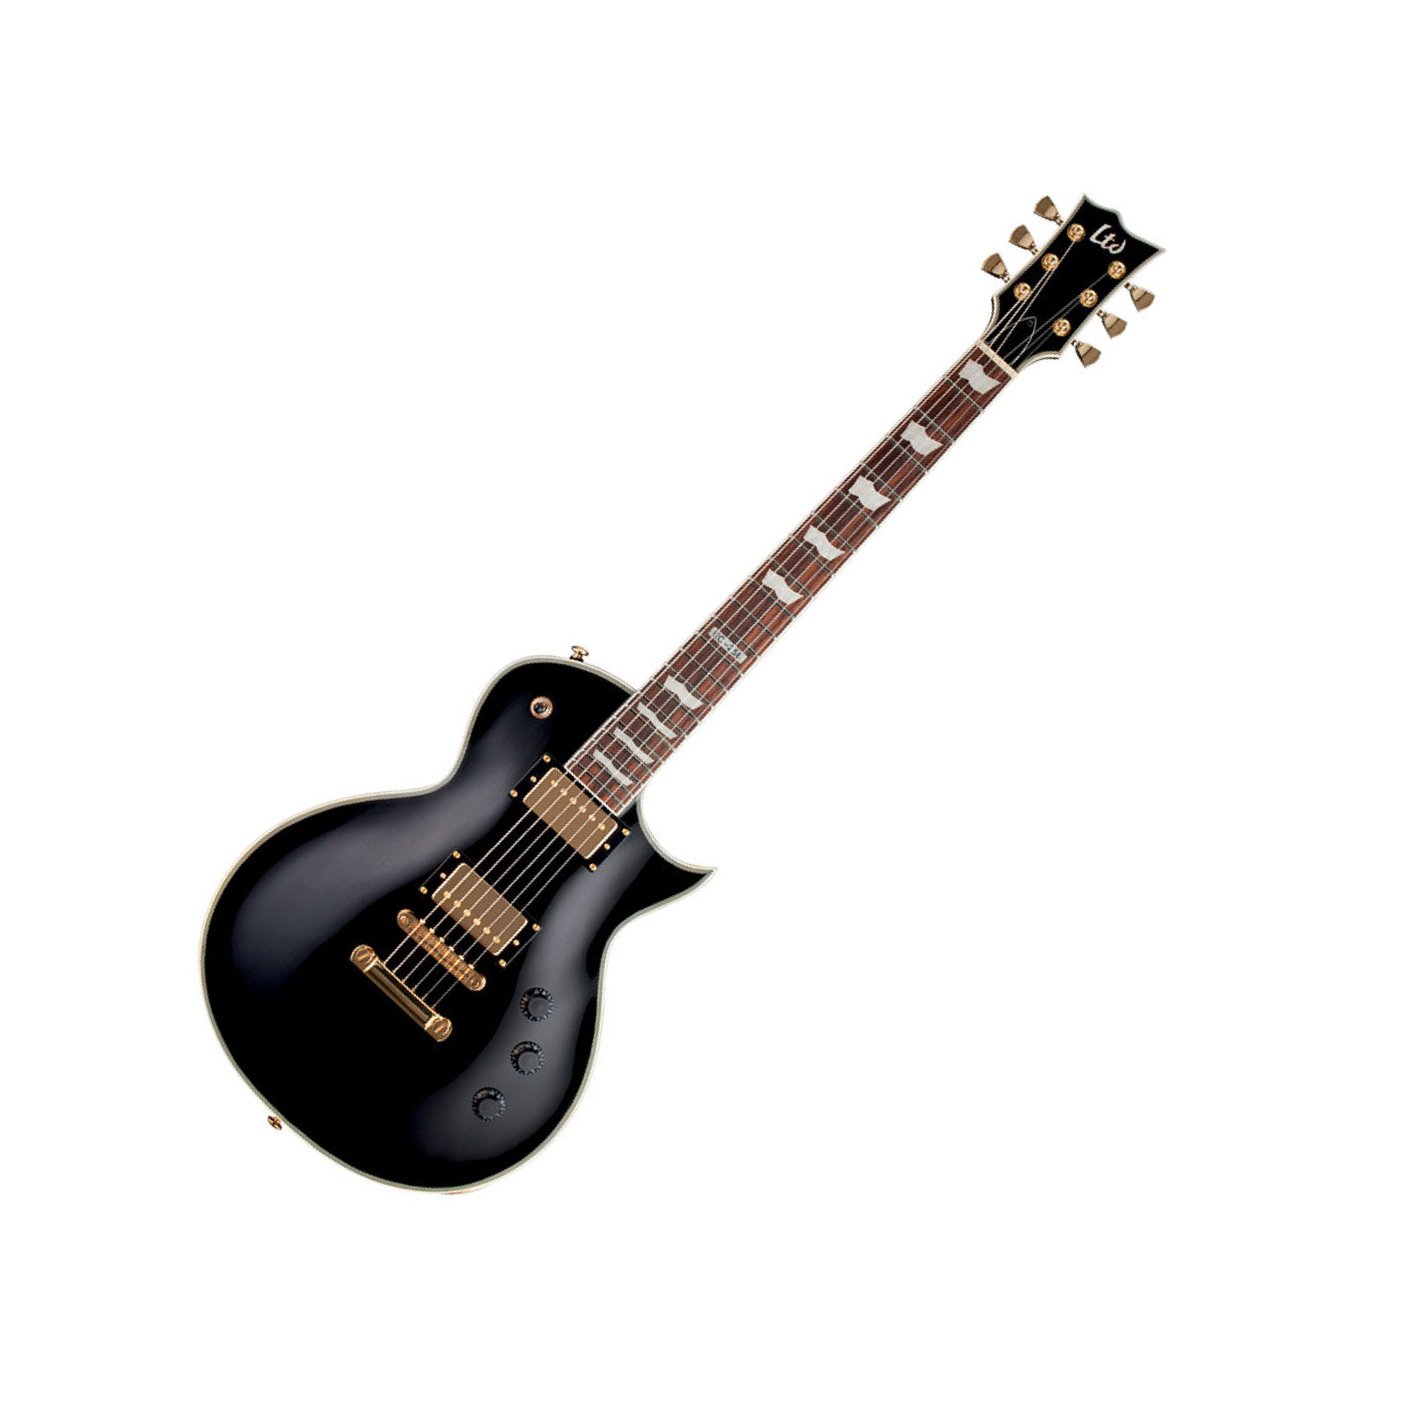 LTD EC-256 Black